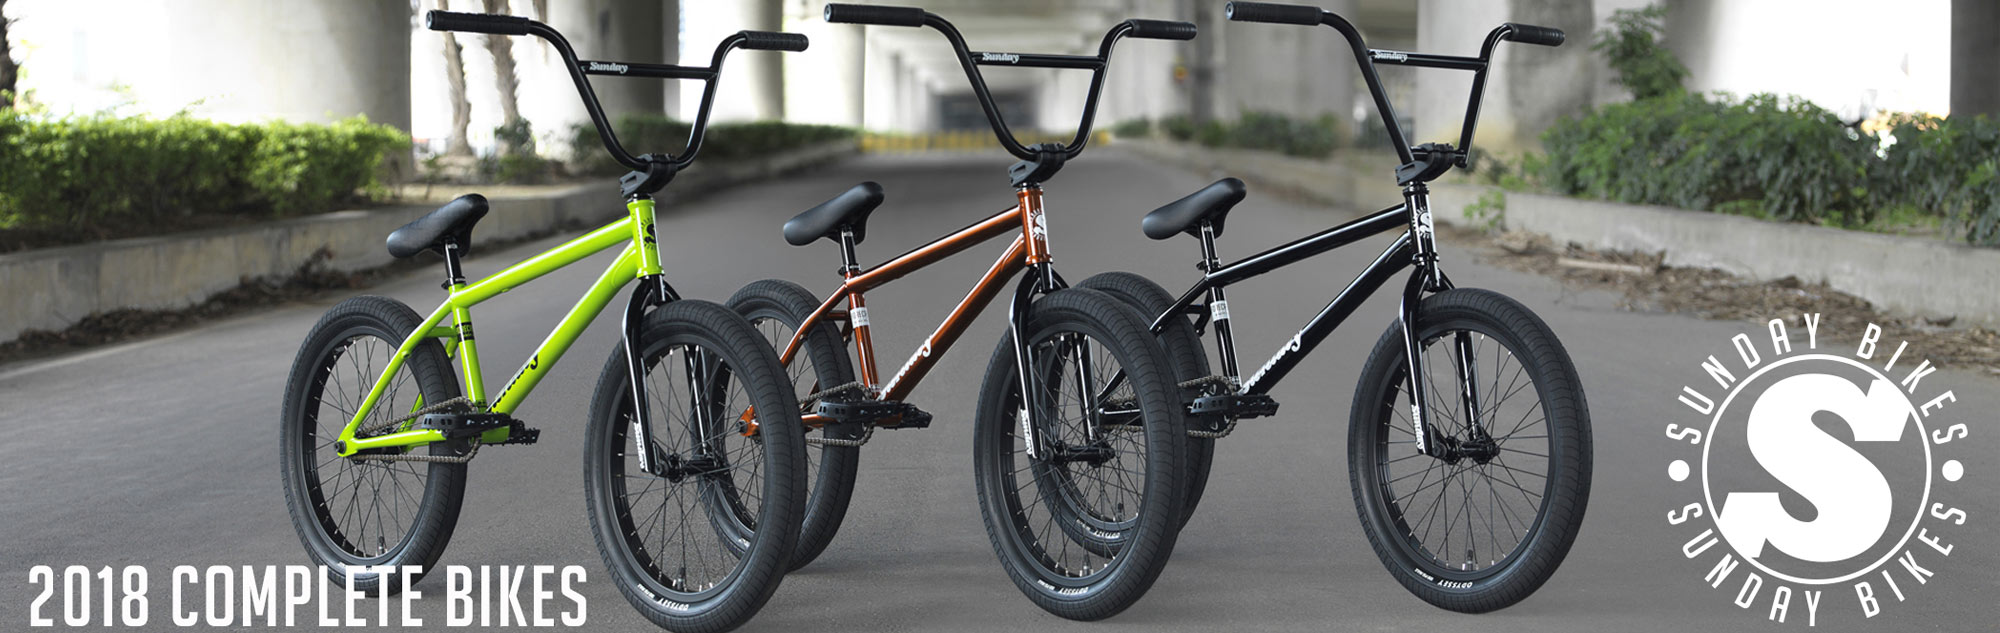 Albe S Bmx Bike Shop Bmx Bikes Bmx Parts Bmx Accessories